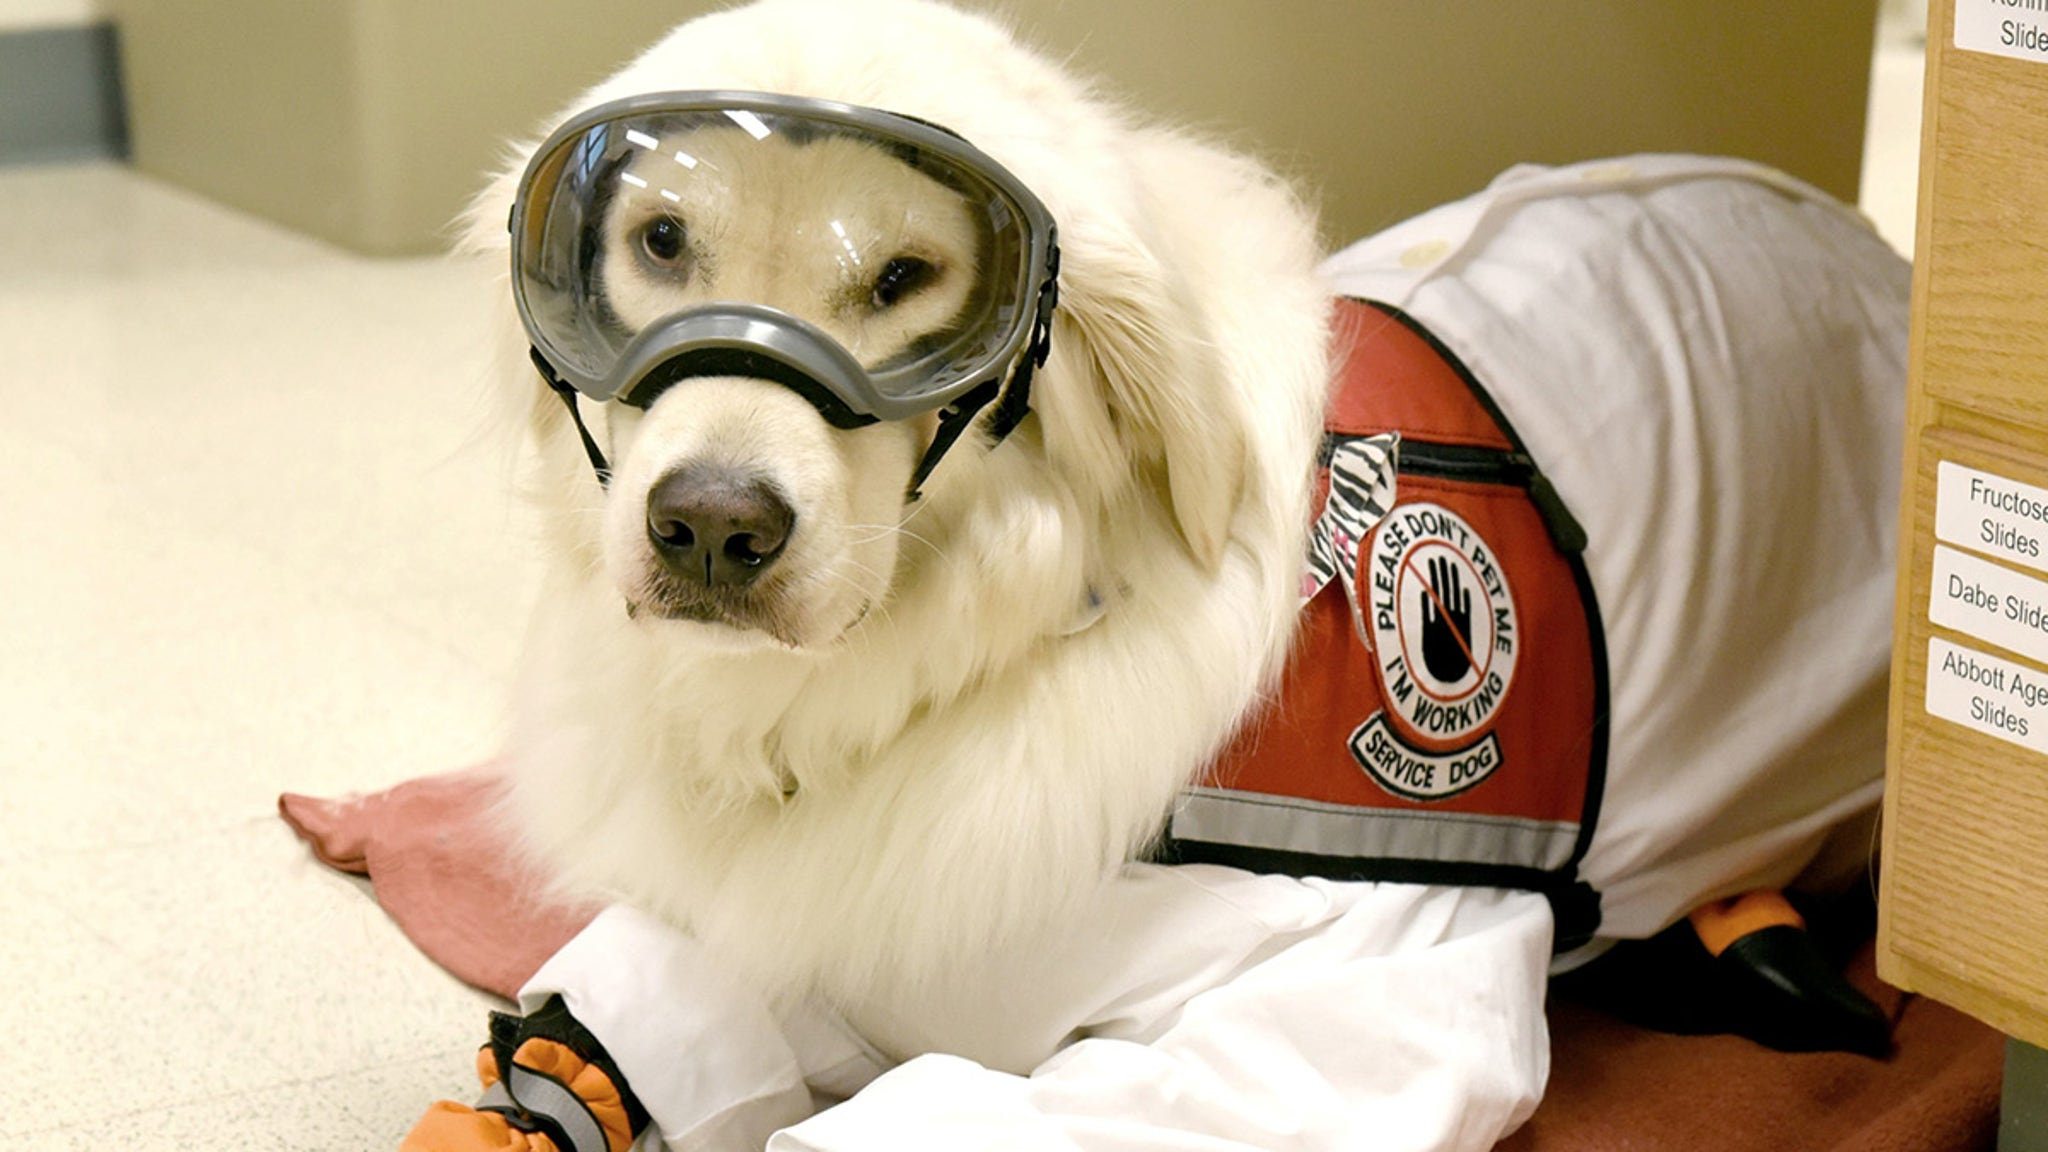 Super Service Dog Scientist's Best Friend ... Wears PPE in the Lab!!!